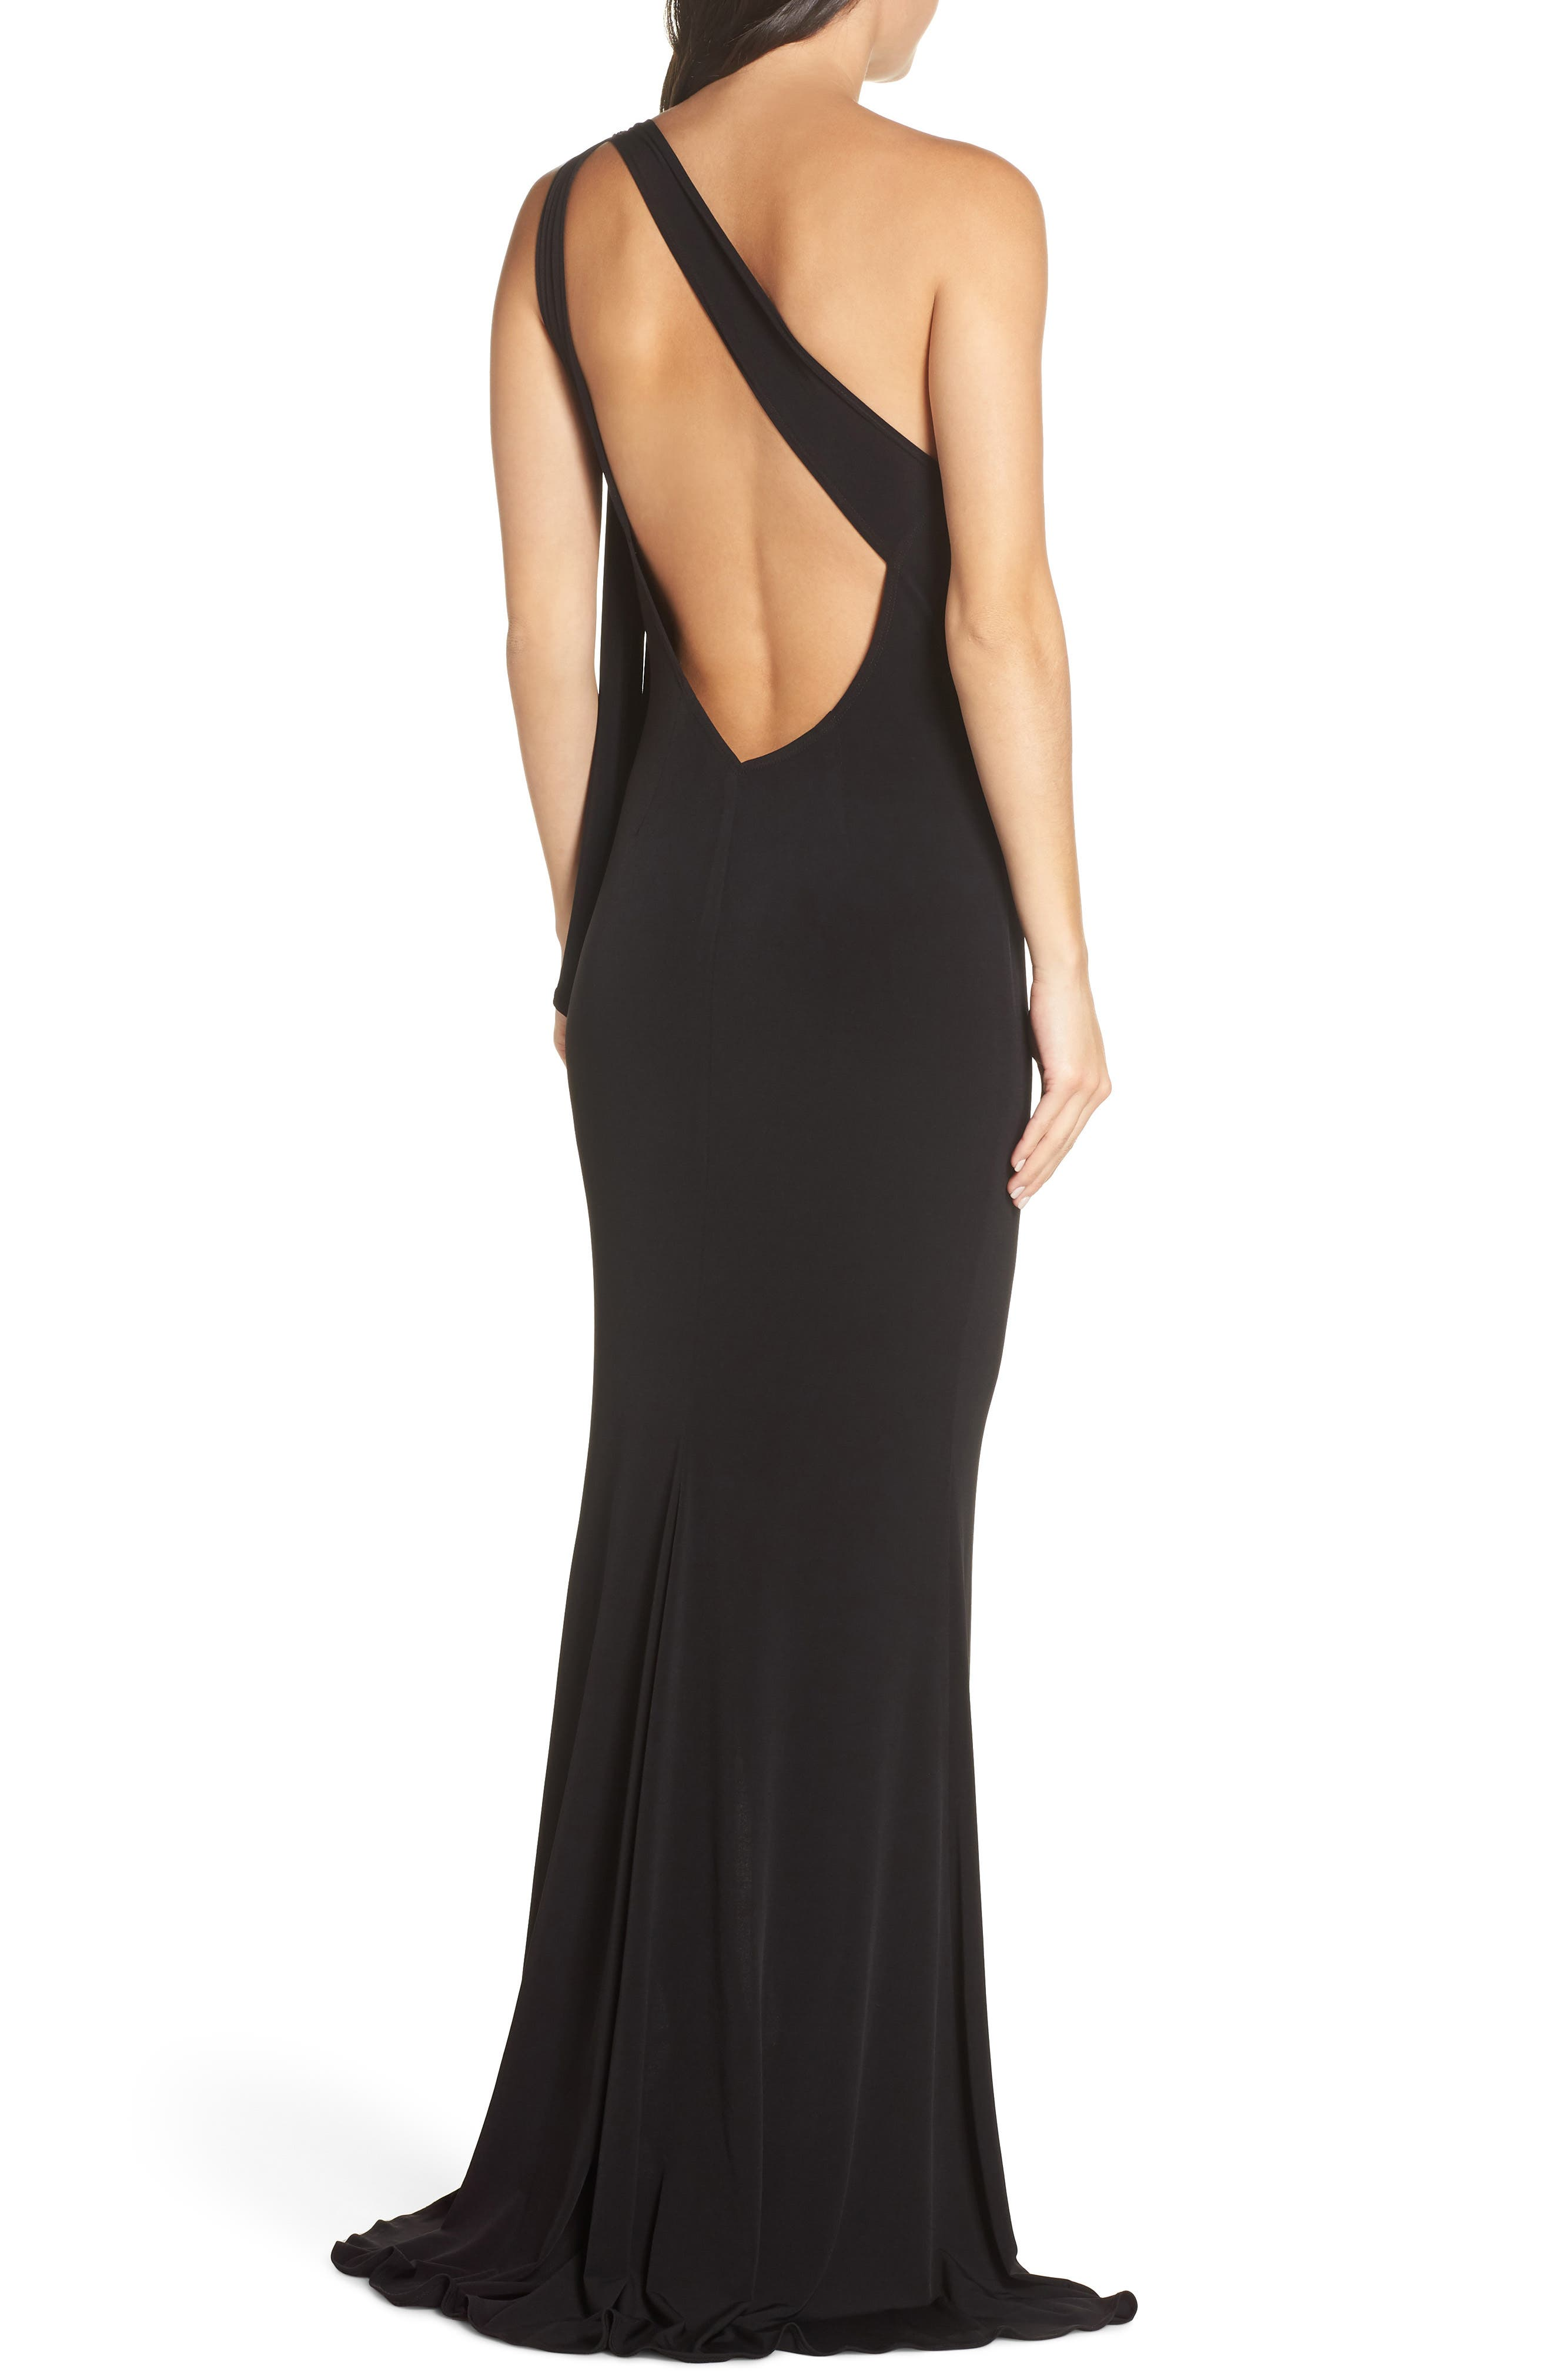 KATIE MAY,                             One-Shoulder Gown,                             Alternate thumbnail 2, color,                             BLACK